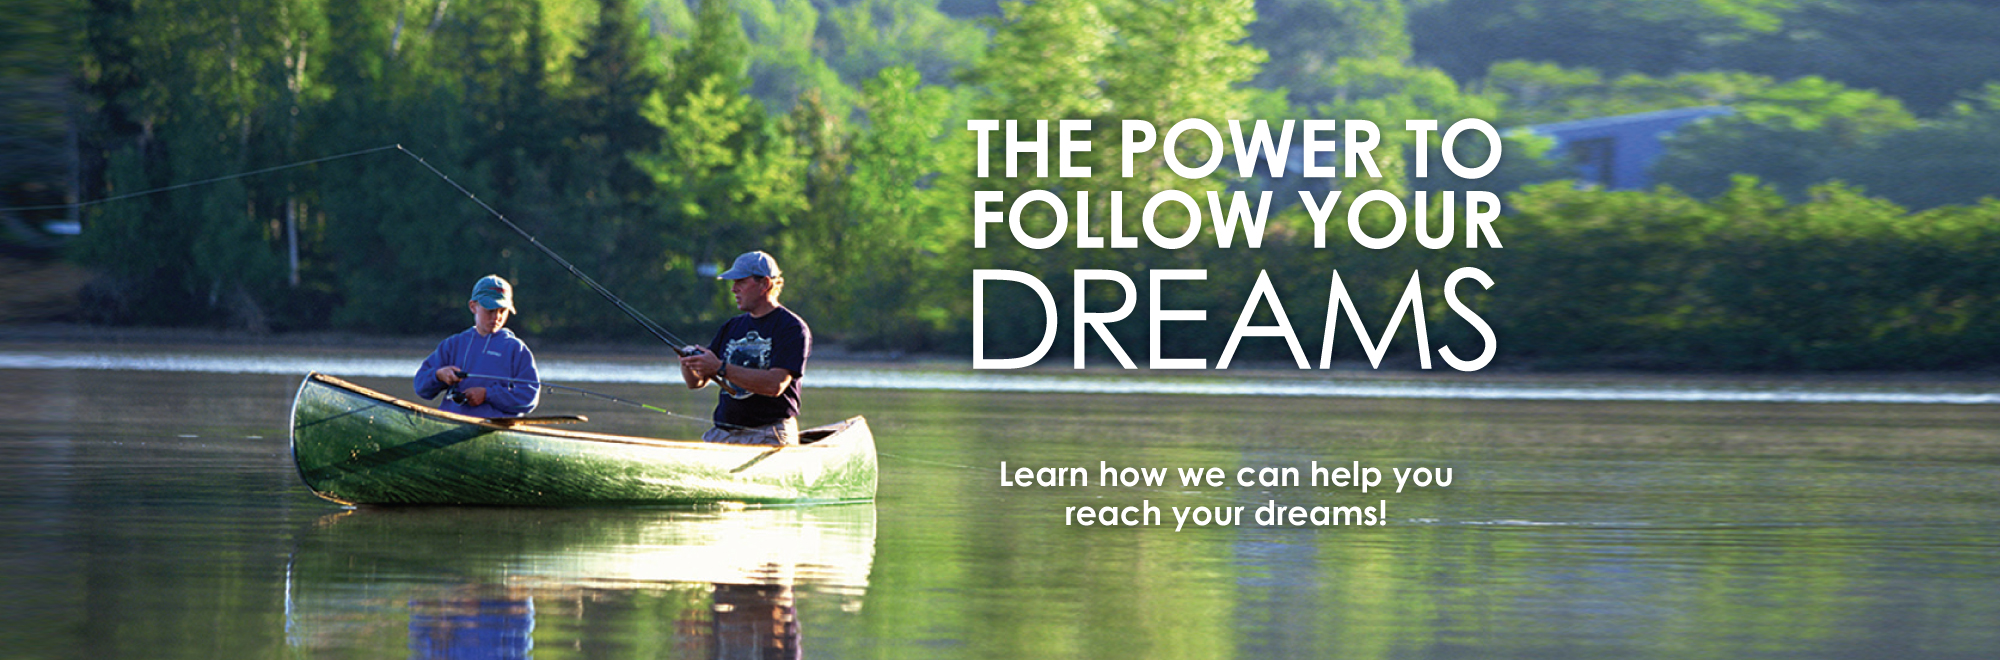 Power to Follow Dreams!